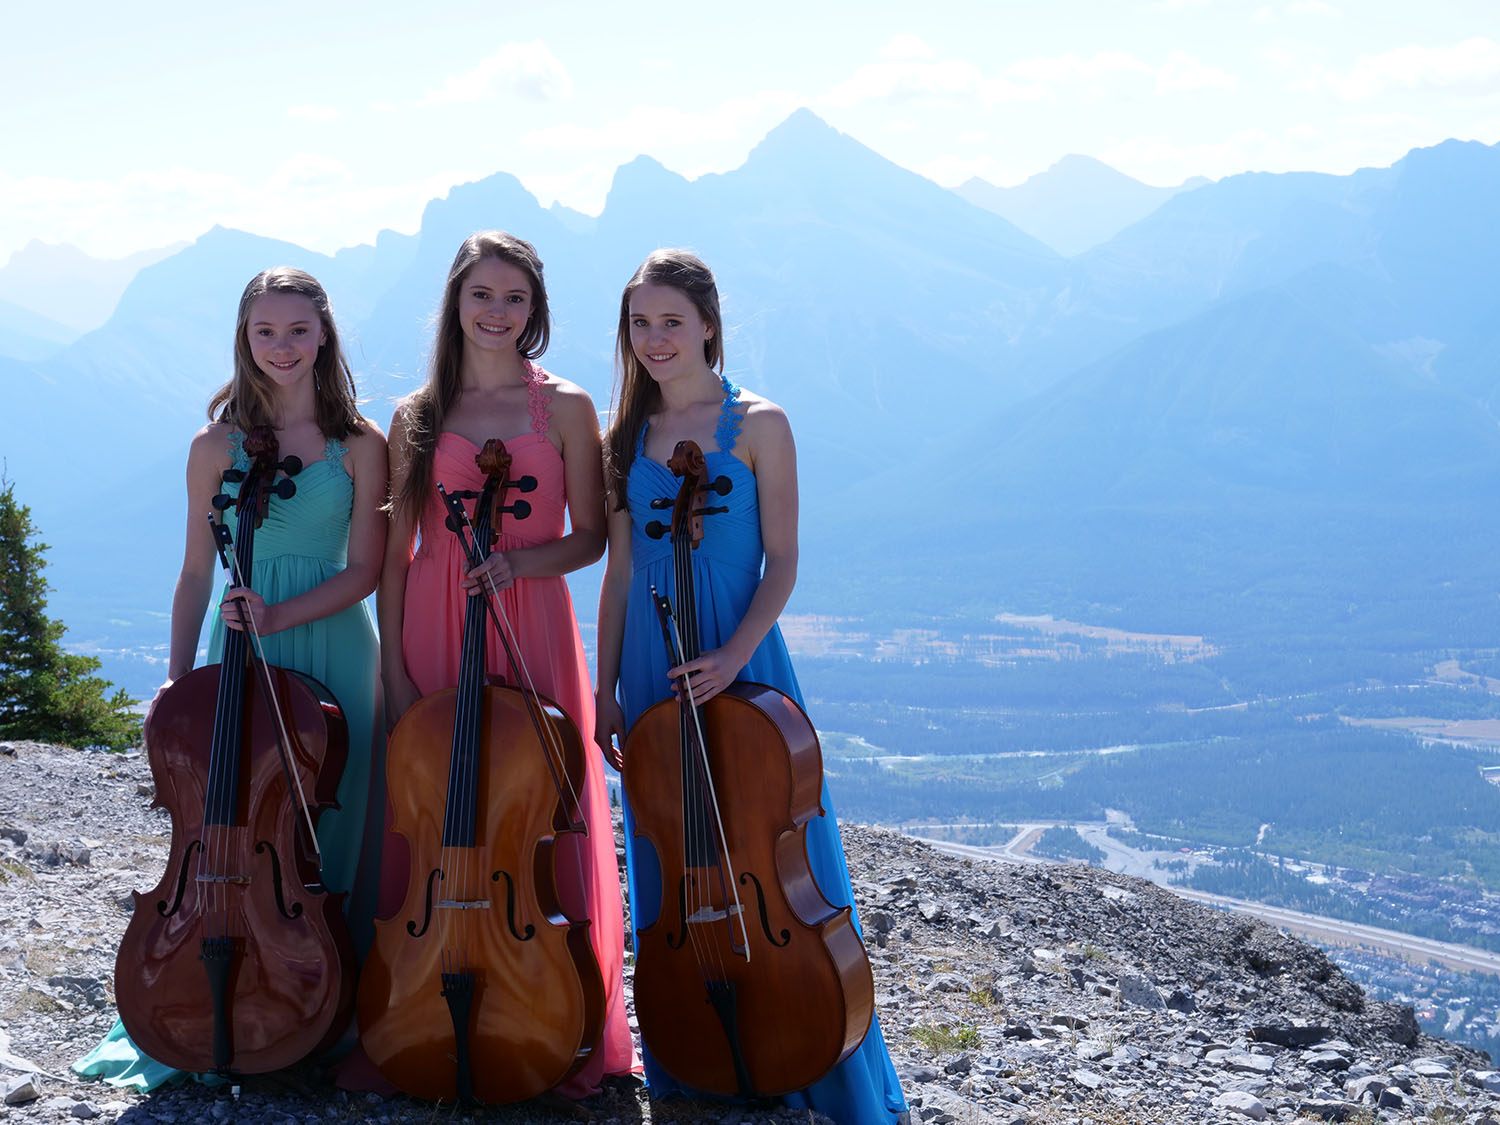 Luka, Ine and Mari Coetzee are the Three Sisters cello trio, pictured in front of the Three Sisters mountain peaks near Canmore, Alberta.